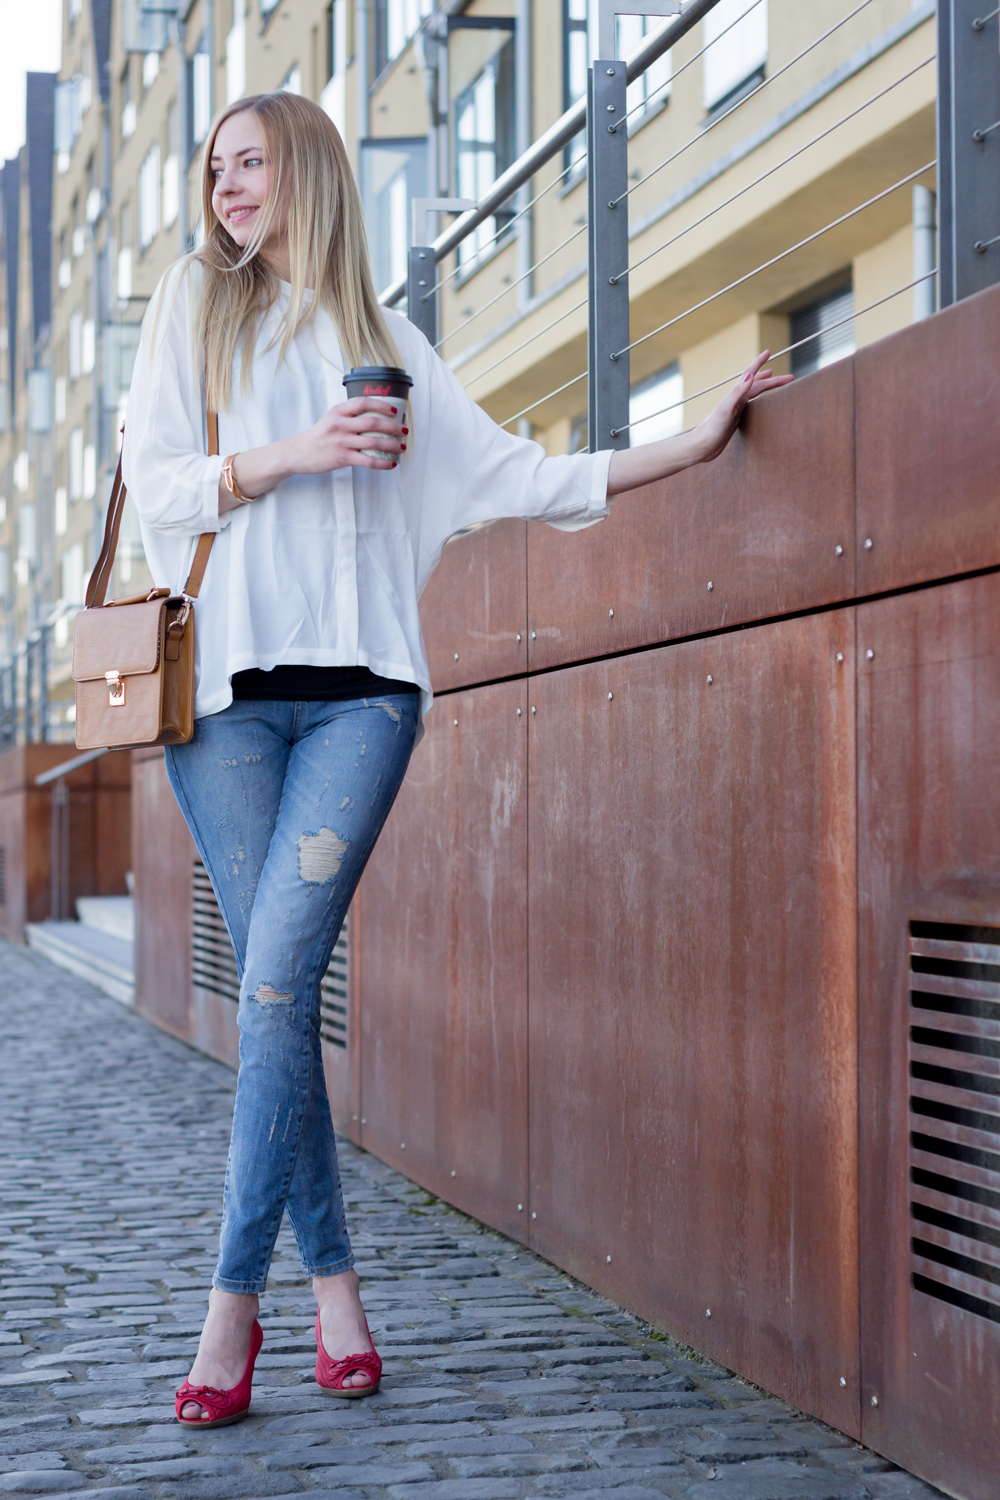 Casual Look - distressed jeans from Noisy May Lucy & white blouse from asos